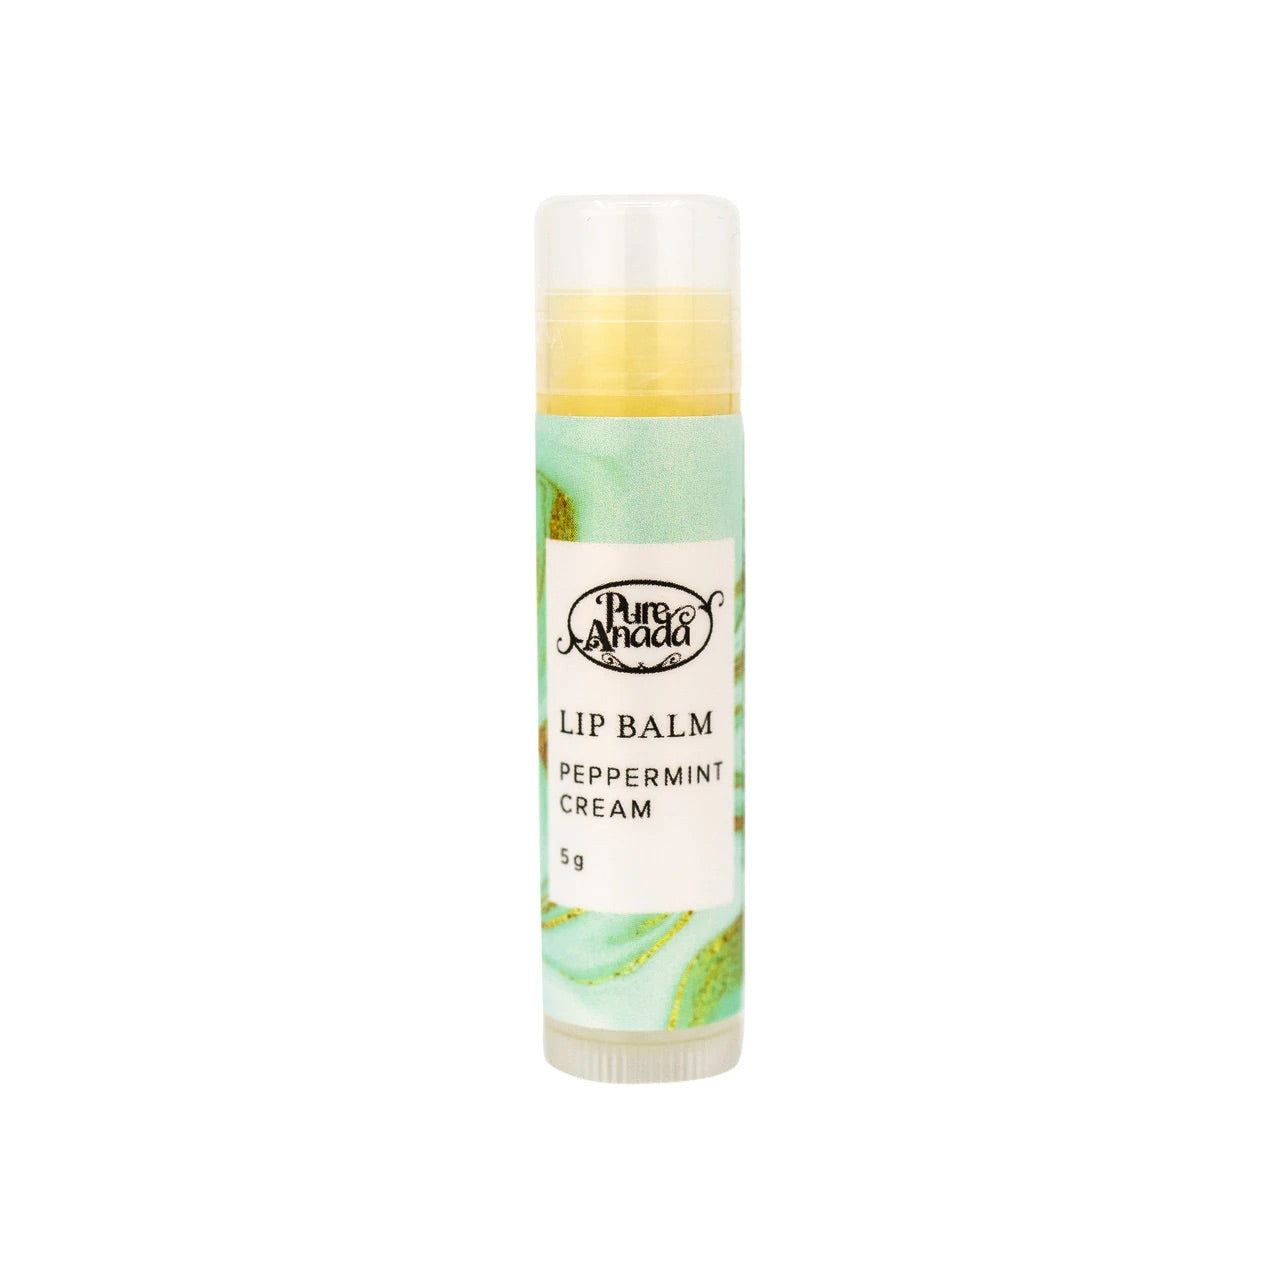 Lip Balm - Peppermint Cream